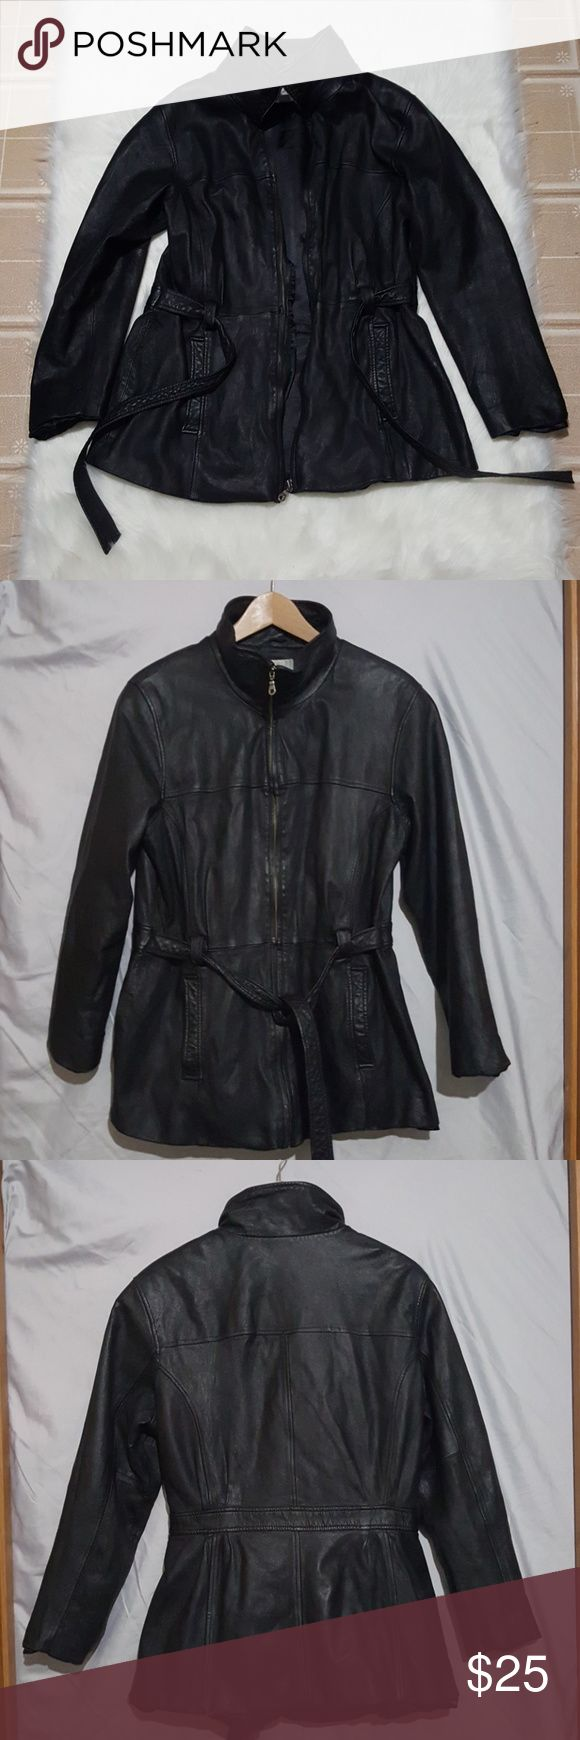 Lambskin Leather Coat Jaqueline Ferrar Size XL Good condition lambskin leather coat. There is a bit of wear along the bottom back of the coat which is pictured, and the place where the belt is attached has unstiched a tad.  The belt on the coat is sewn to the sides, so they can't be removed. Jacqueline Ferrar Jackets & Coats